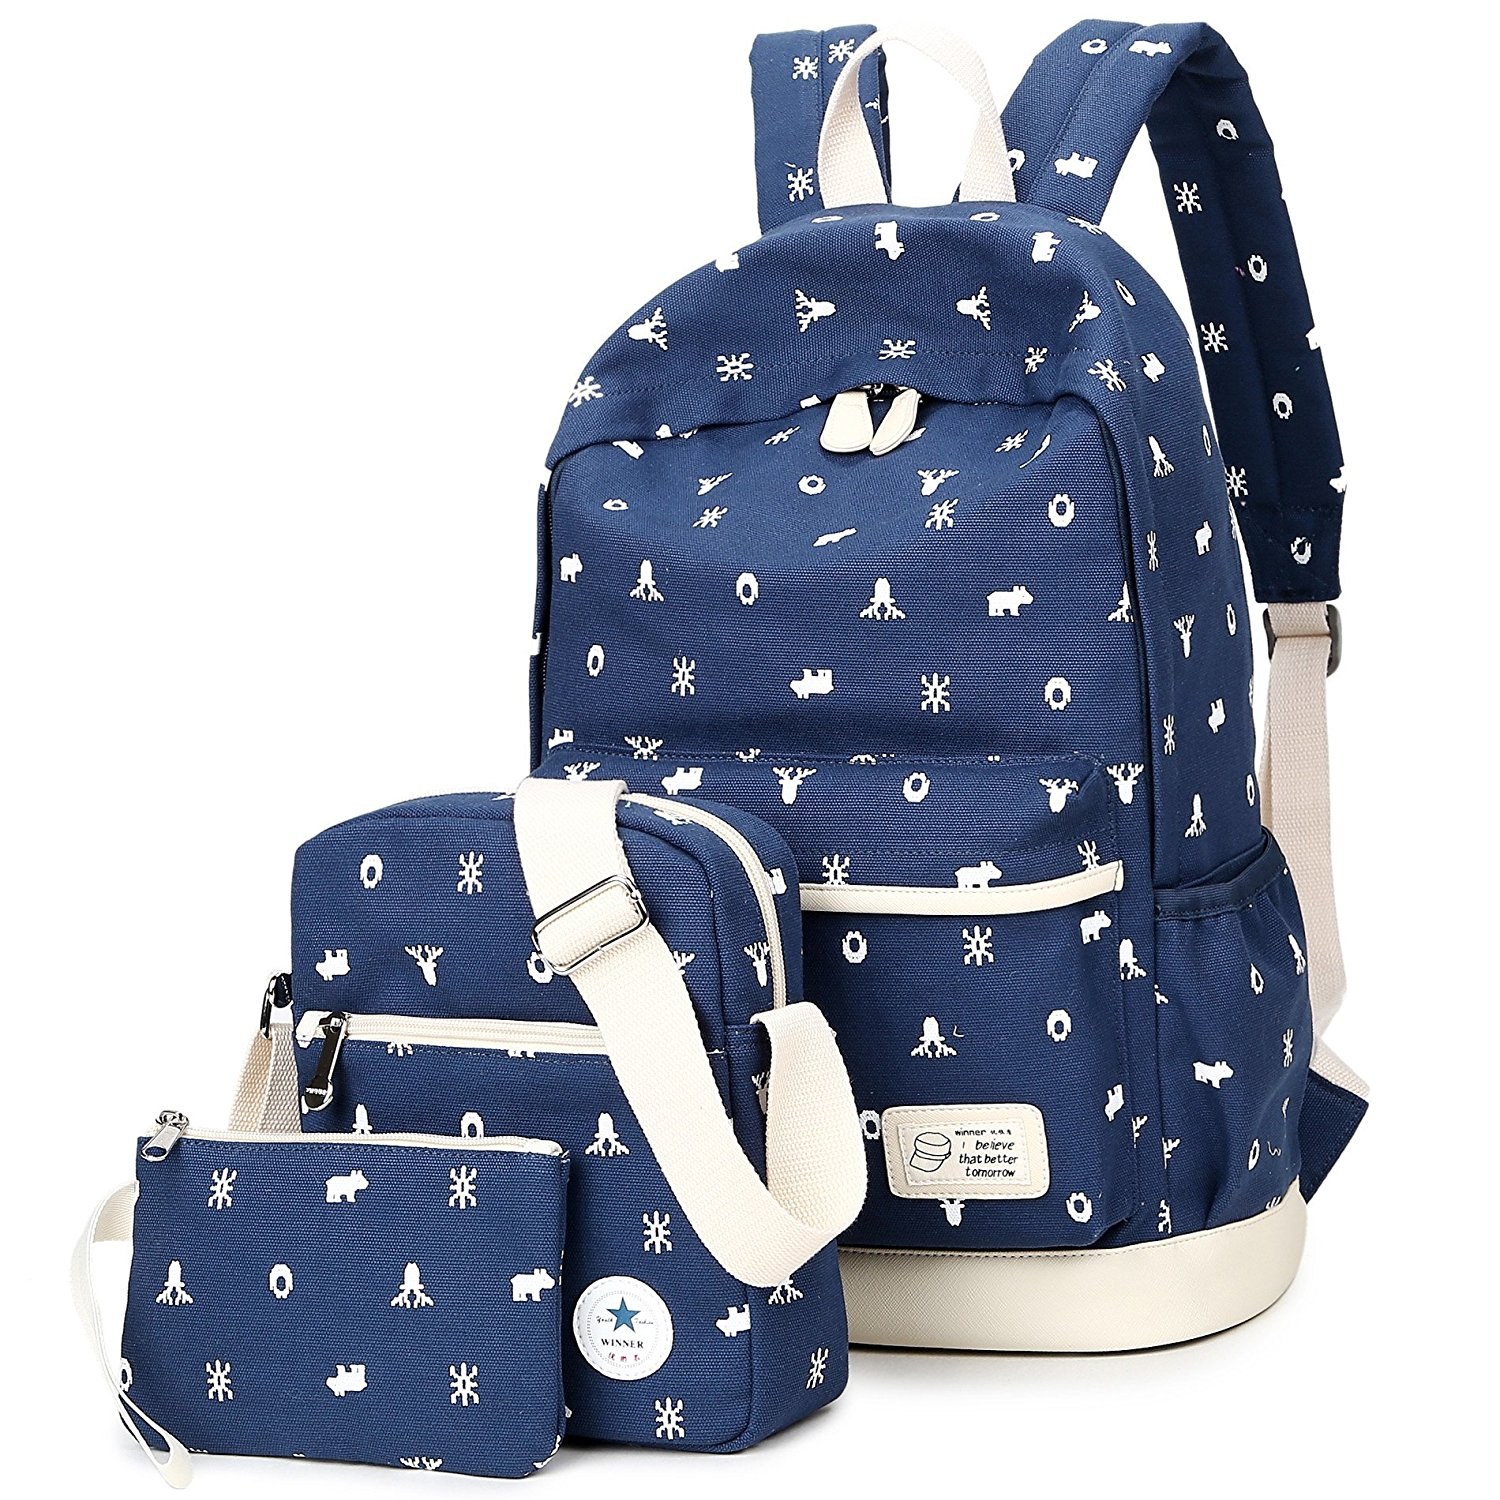 3b262809336 BLOOMSTAR Canvas Casual School Backpacks Bookbag Shoulder Laptop Bag 3 in 1  Set